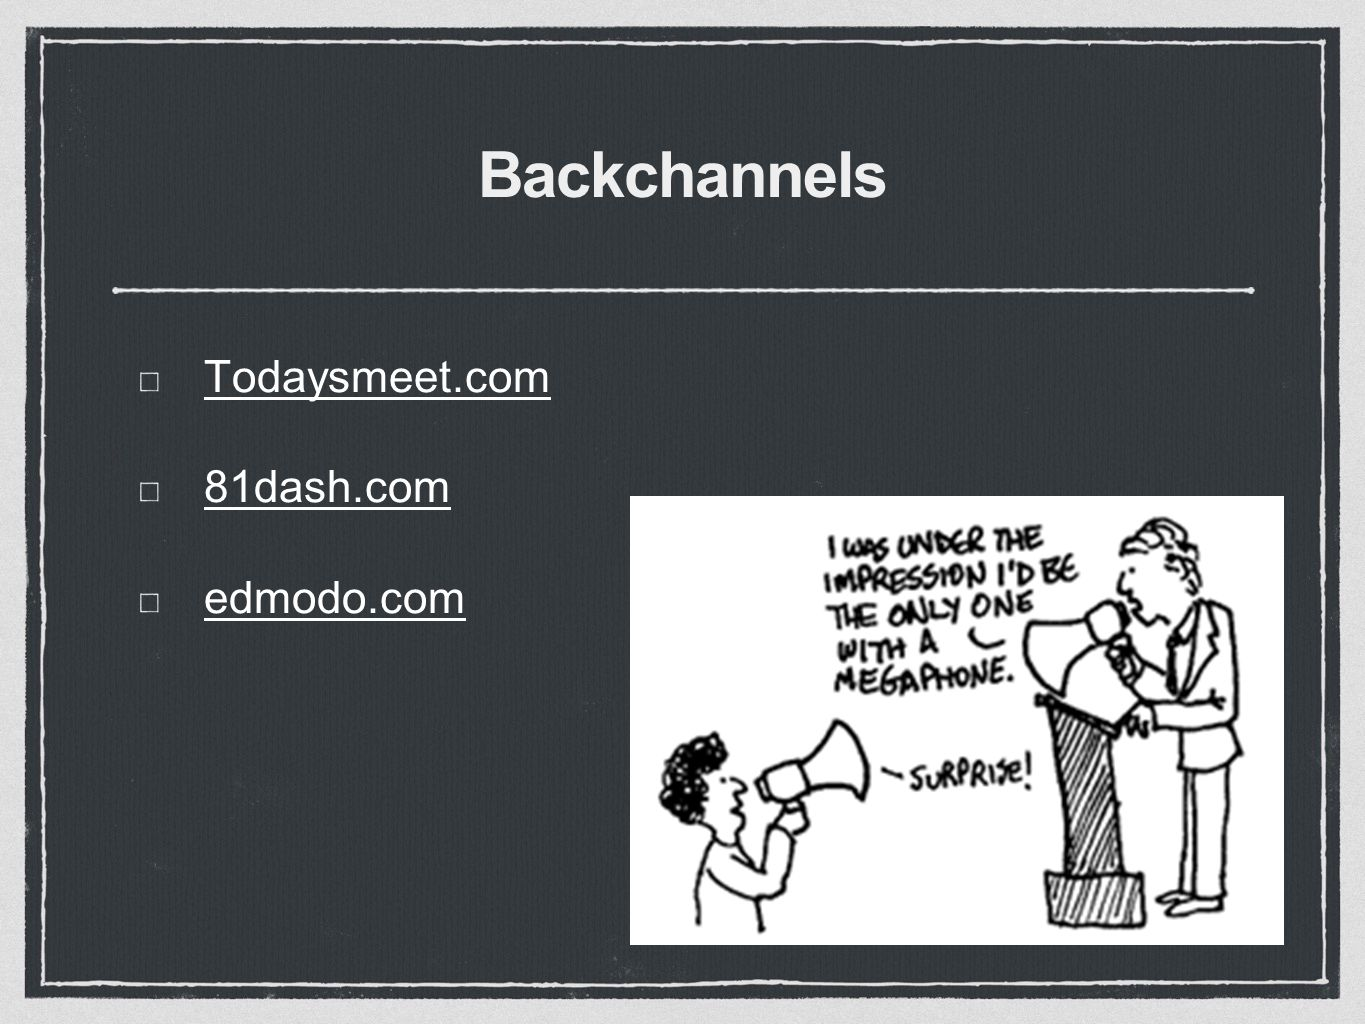 Backchannels Todaysmeet.com 81dash.com edmodo.com